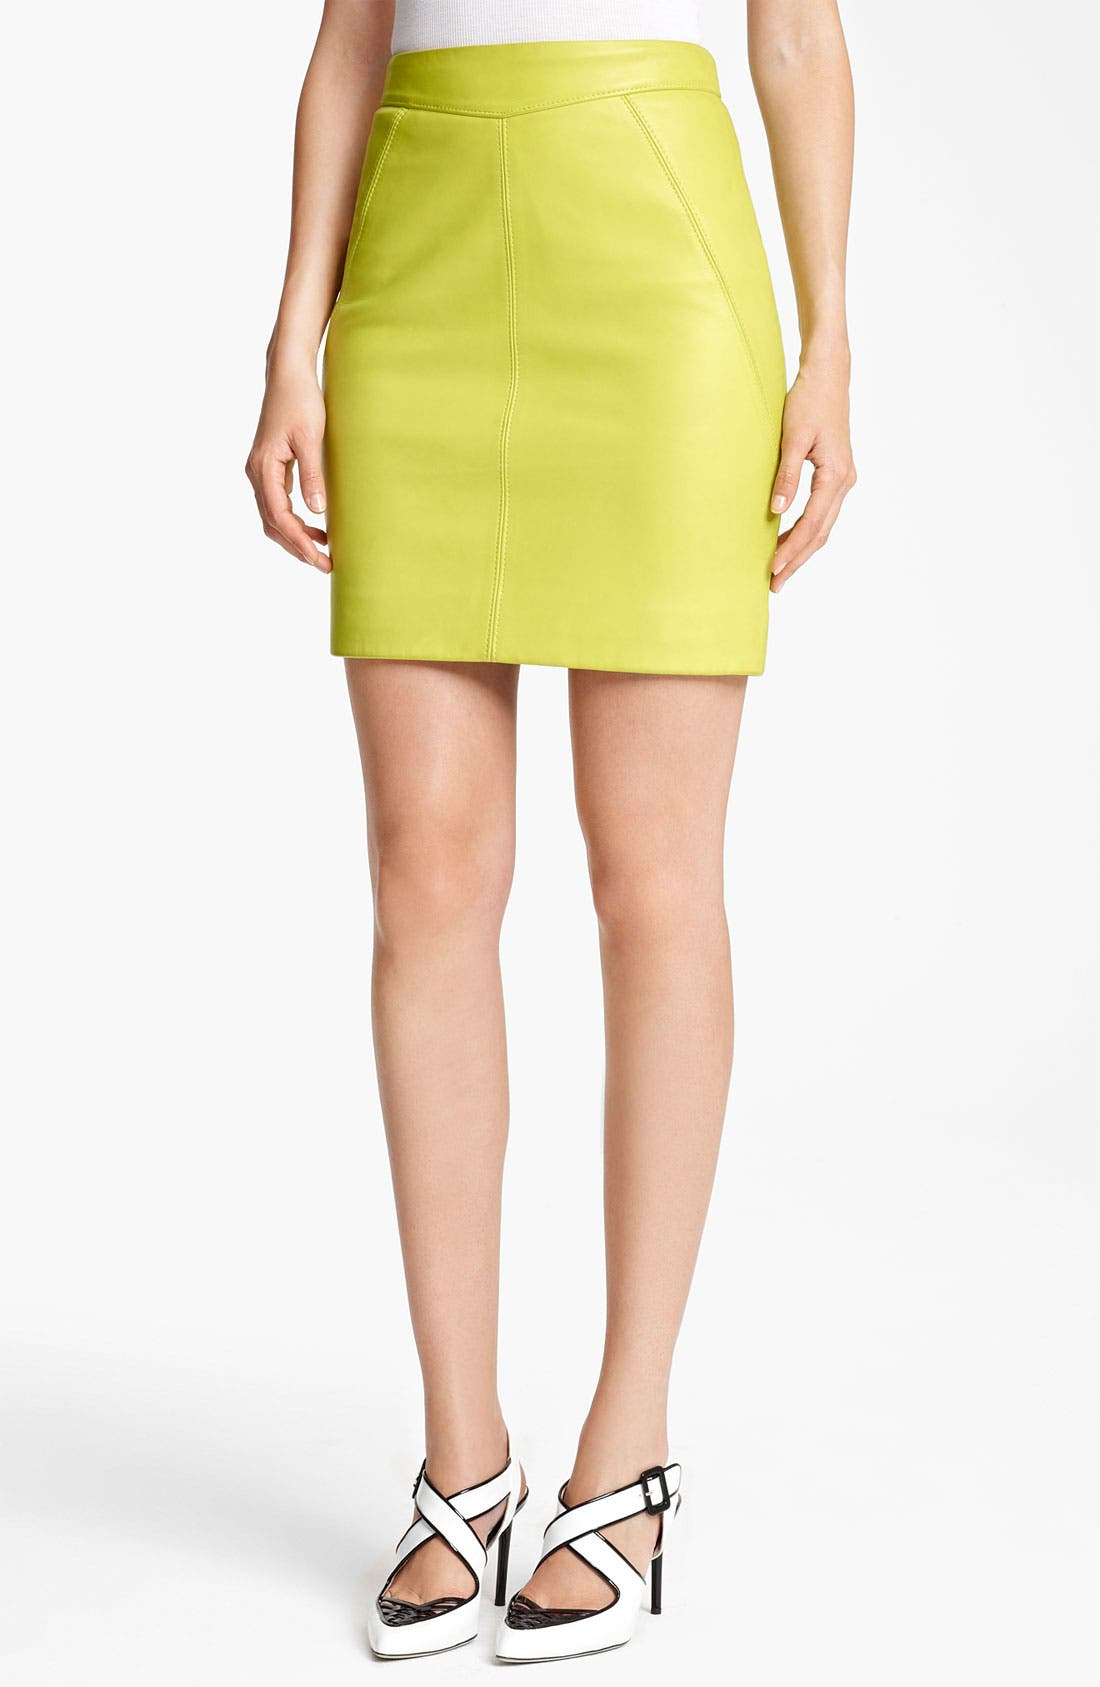 Alternate Image 1 Selected - Jason Wu Nappa Leather Pencil Skirt